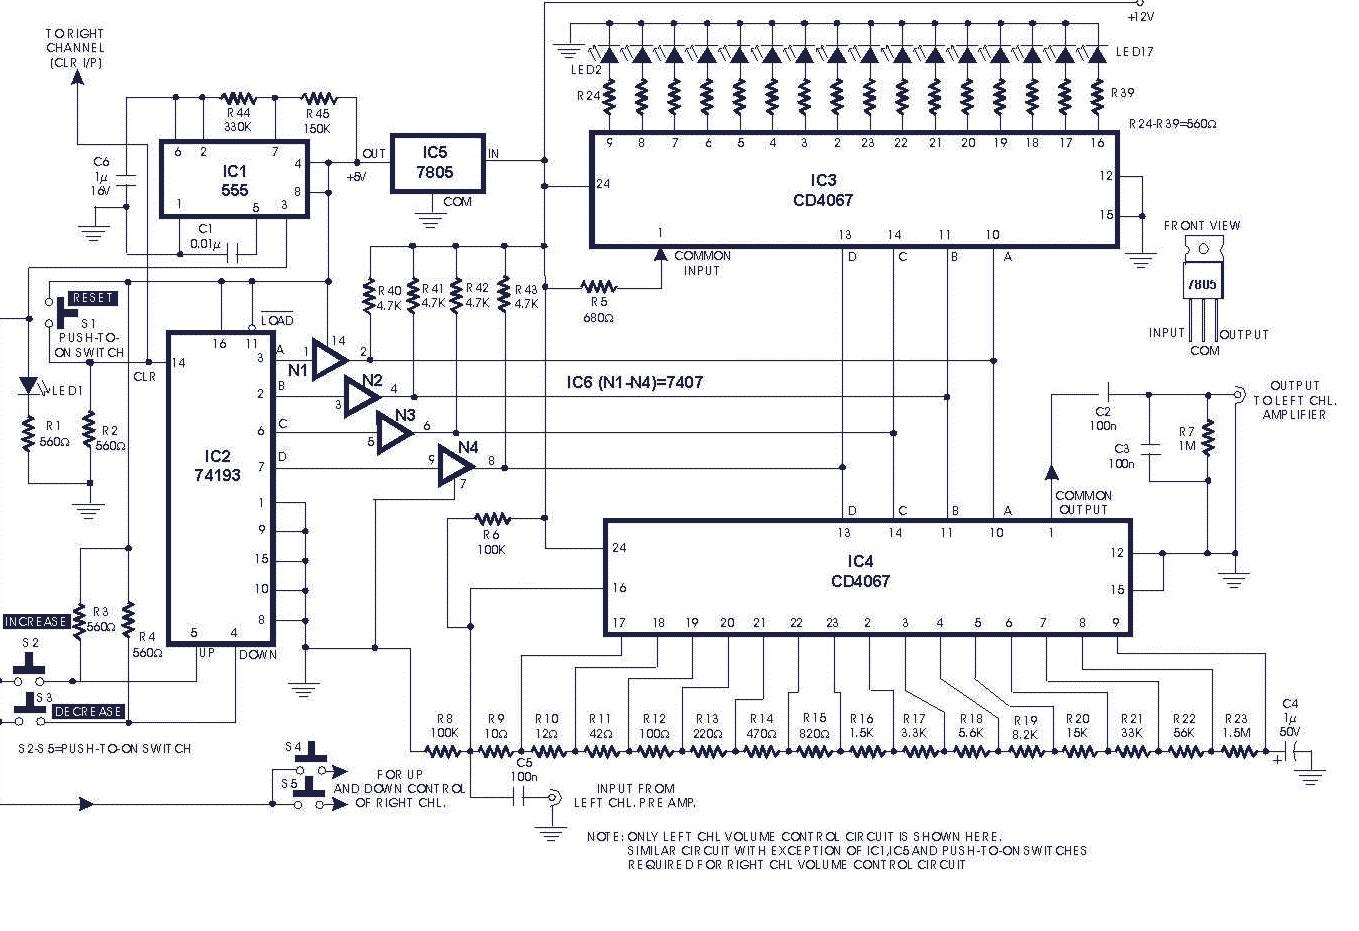 12 volt 2 battery system wiring diagram digital volume control circuit s2 system wiring diagram